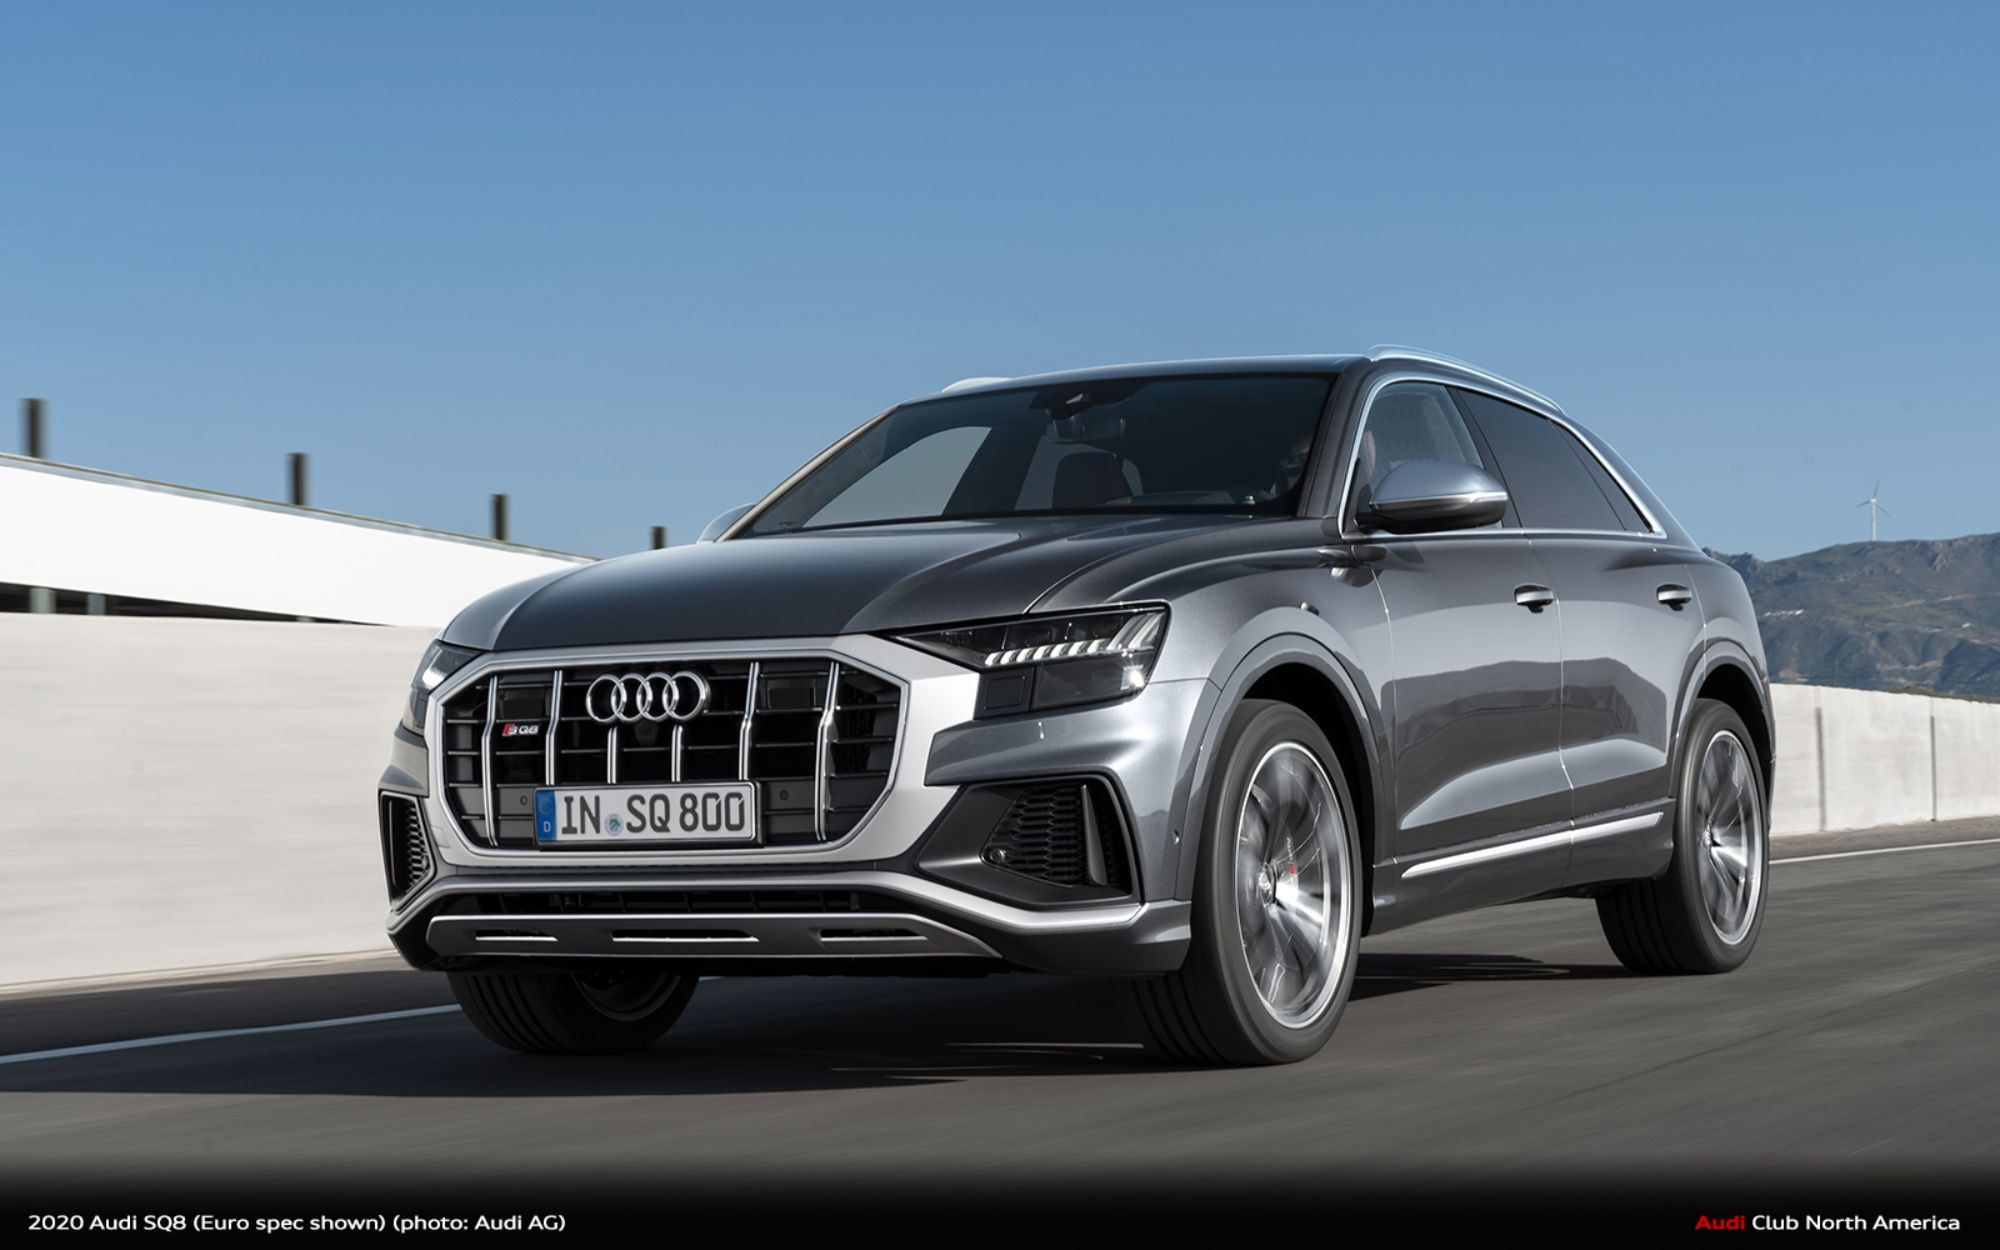 2020 Audi SQ8 Delivers Powerful V8 Performance and Bold Road Presence